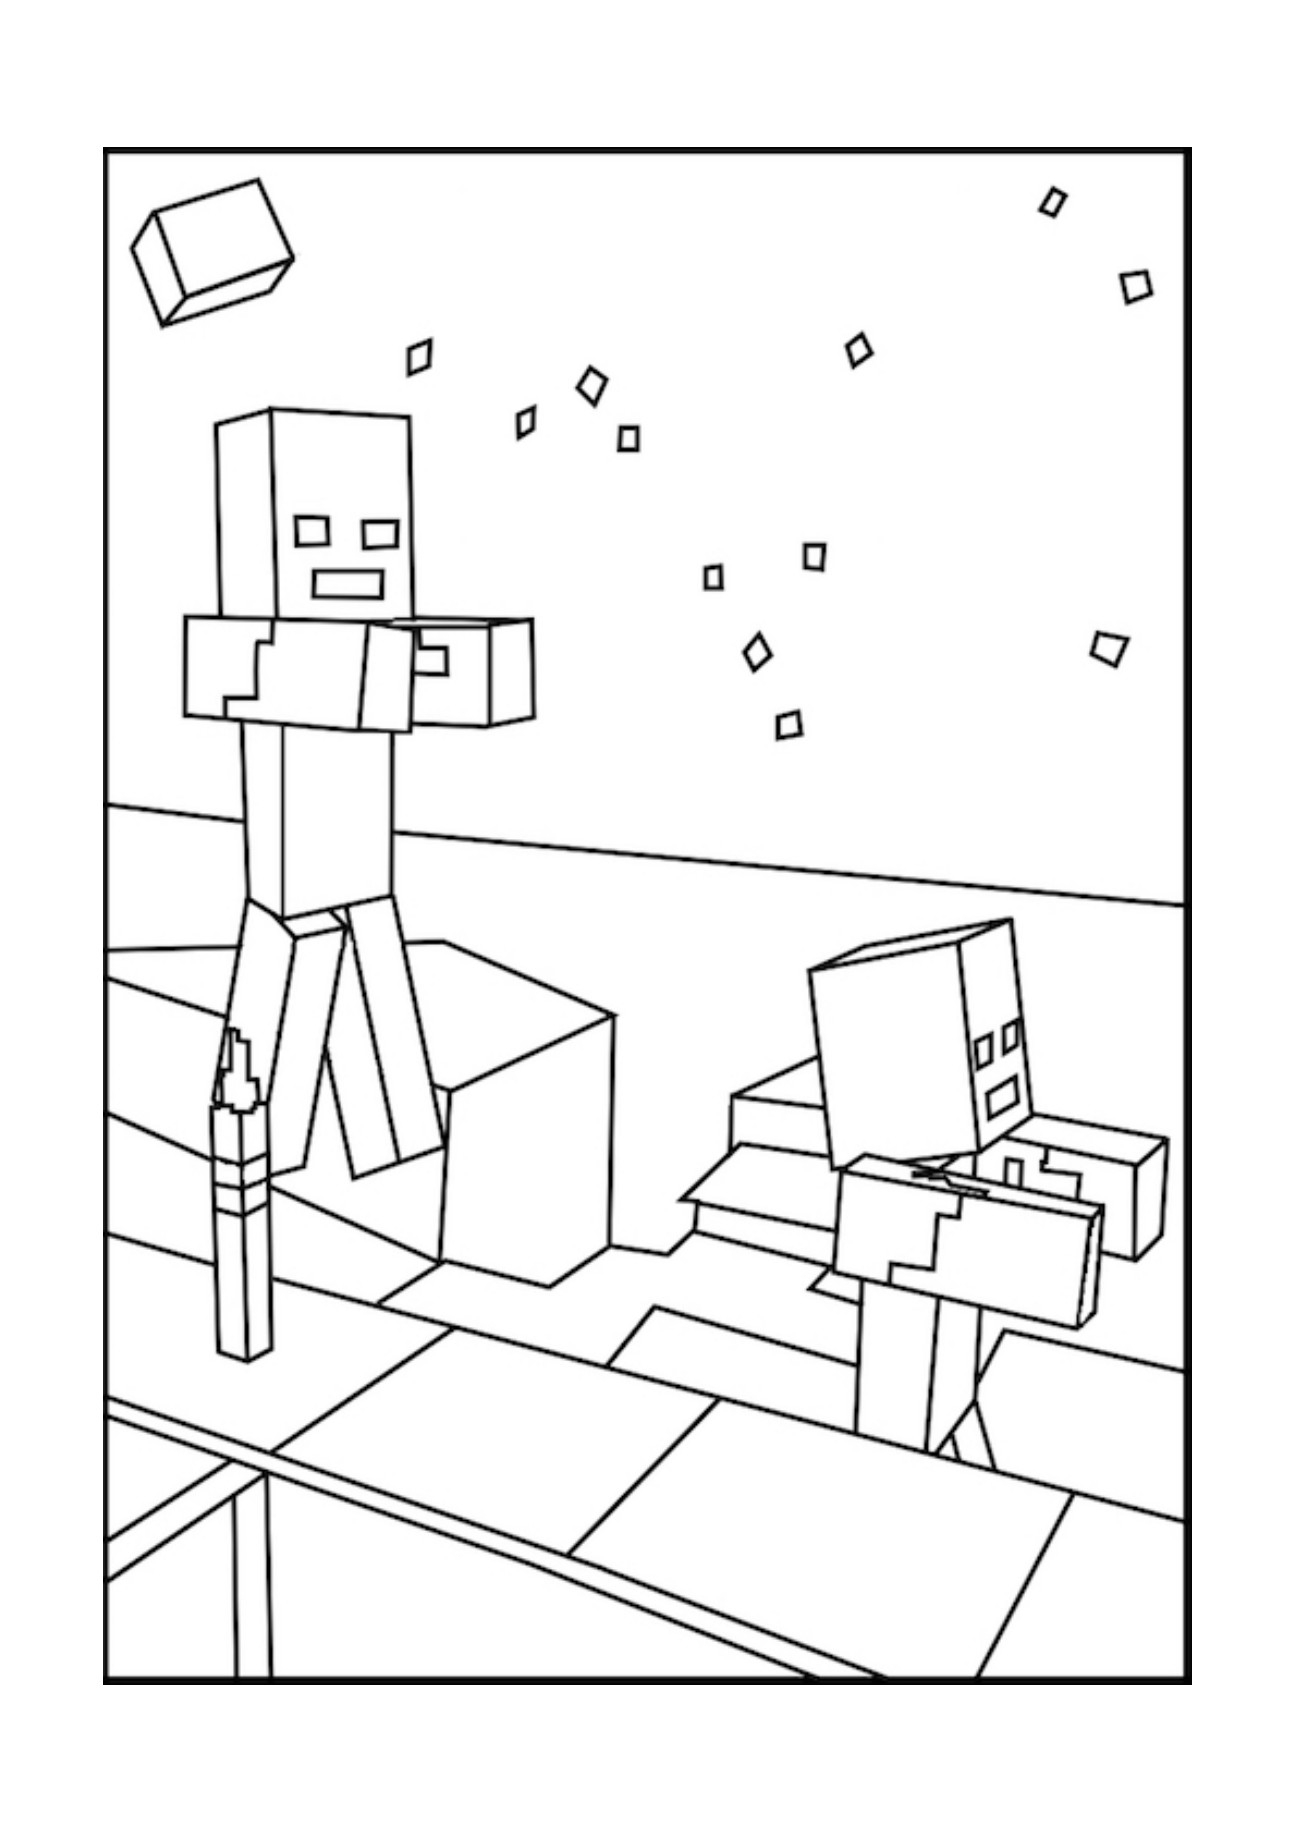 Arrow Coloring Pages Minecraft Bow And Arrow Coloring Pages Best Of Best Minecraft